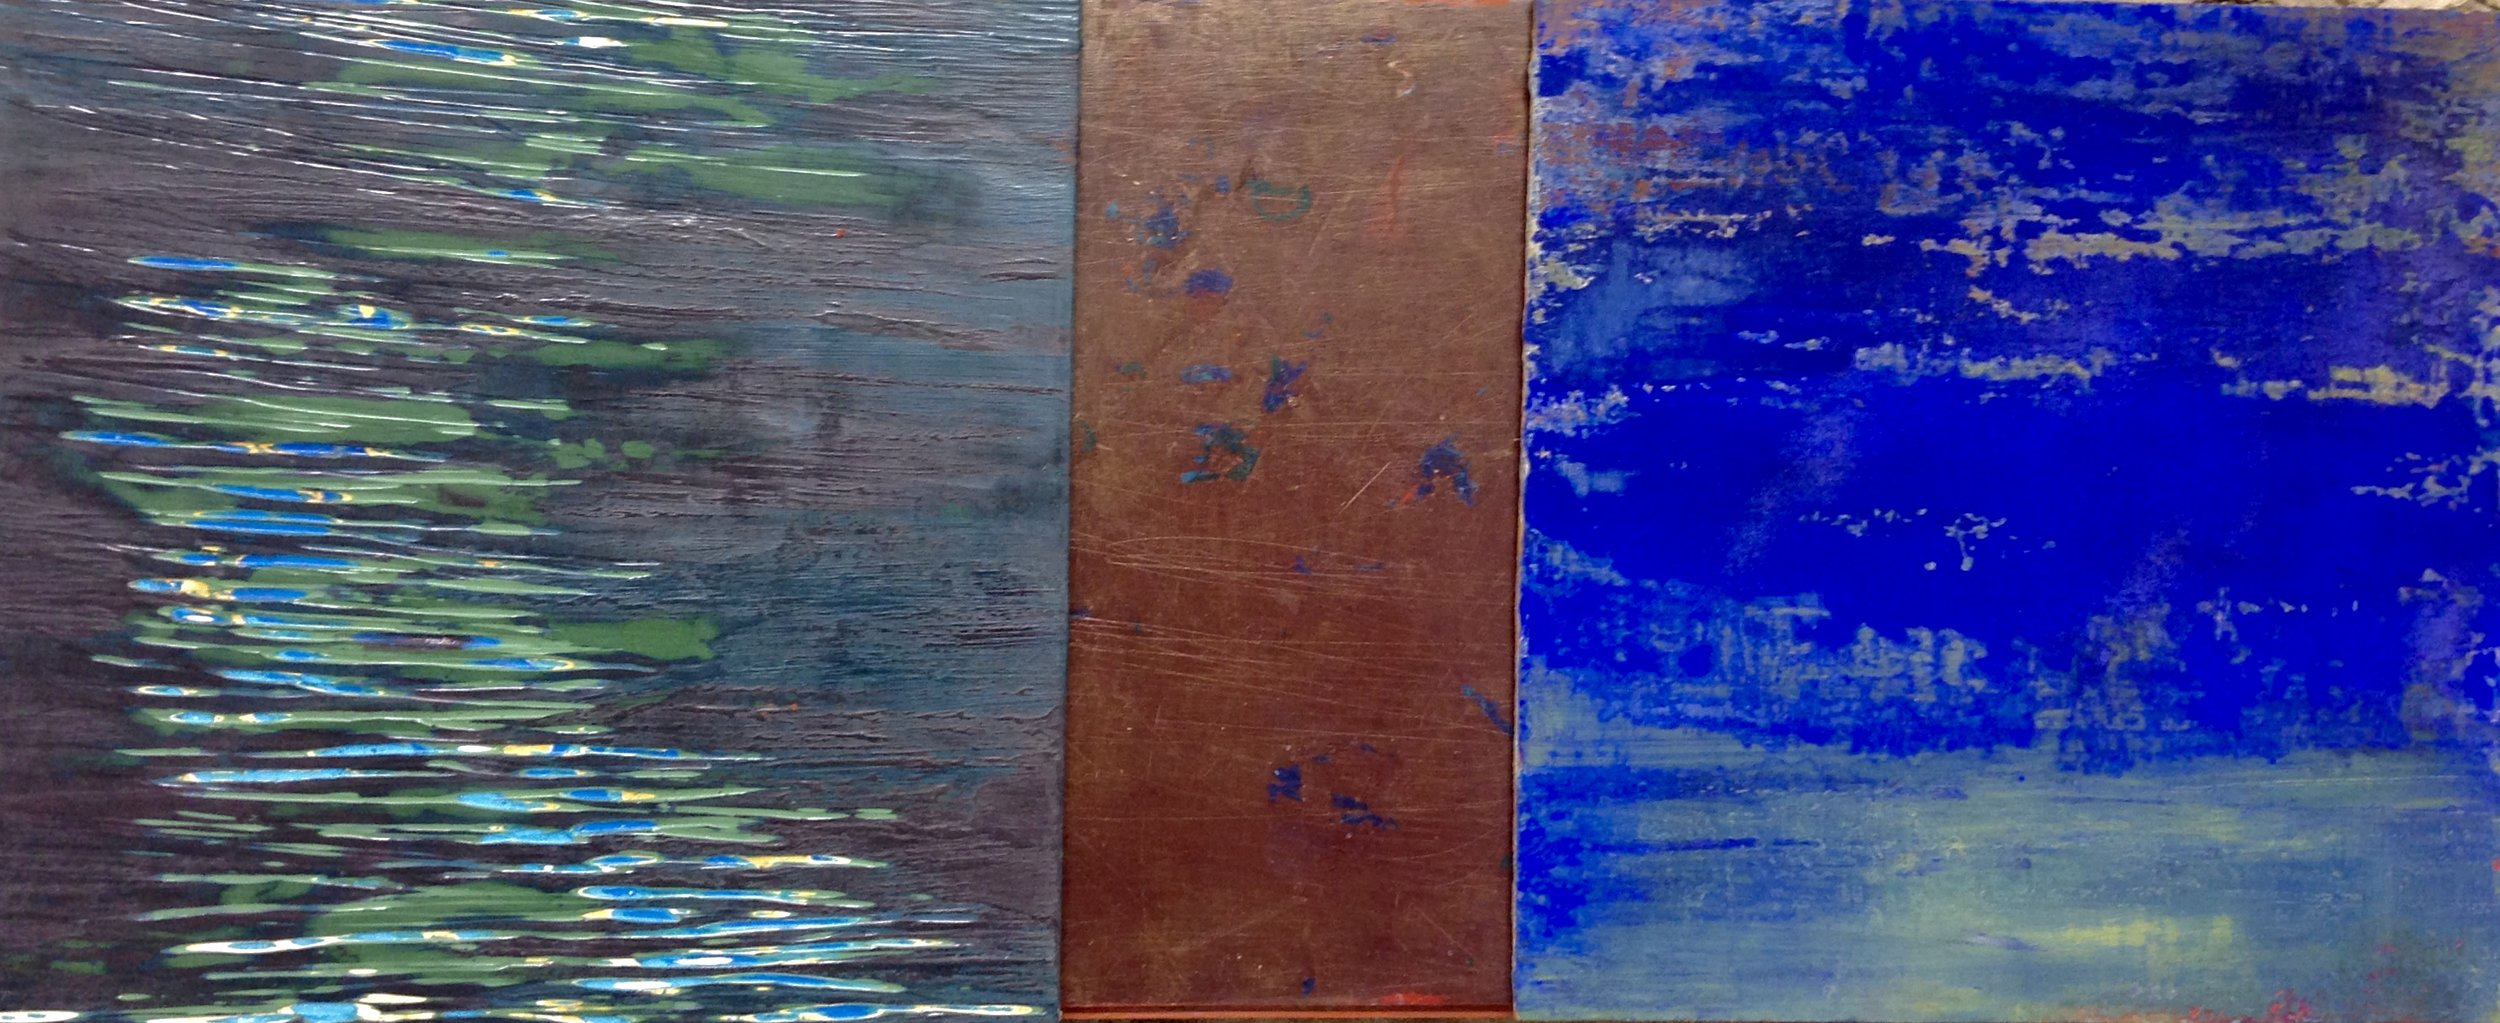 Rebecca Spivack   Triptych 3   2016  Integrated colored plaster and pigment construction  Signed and dated by the artist,  verso   12 x 29 inches